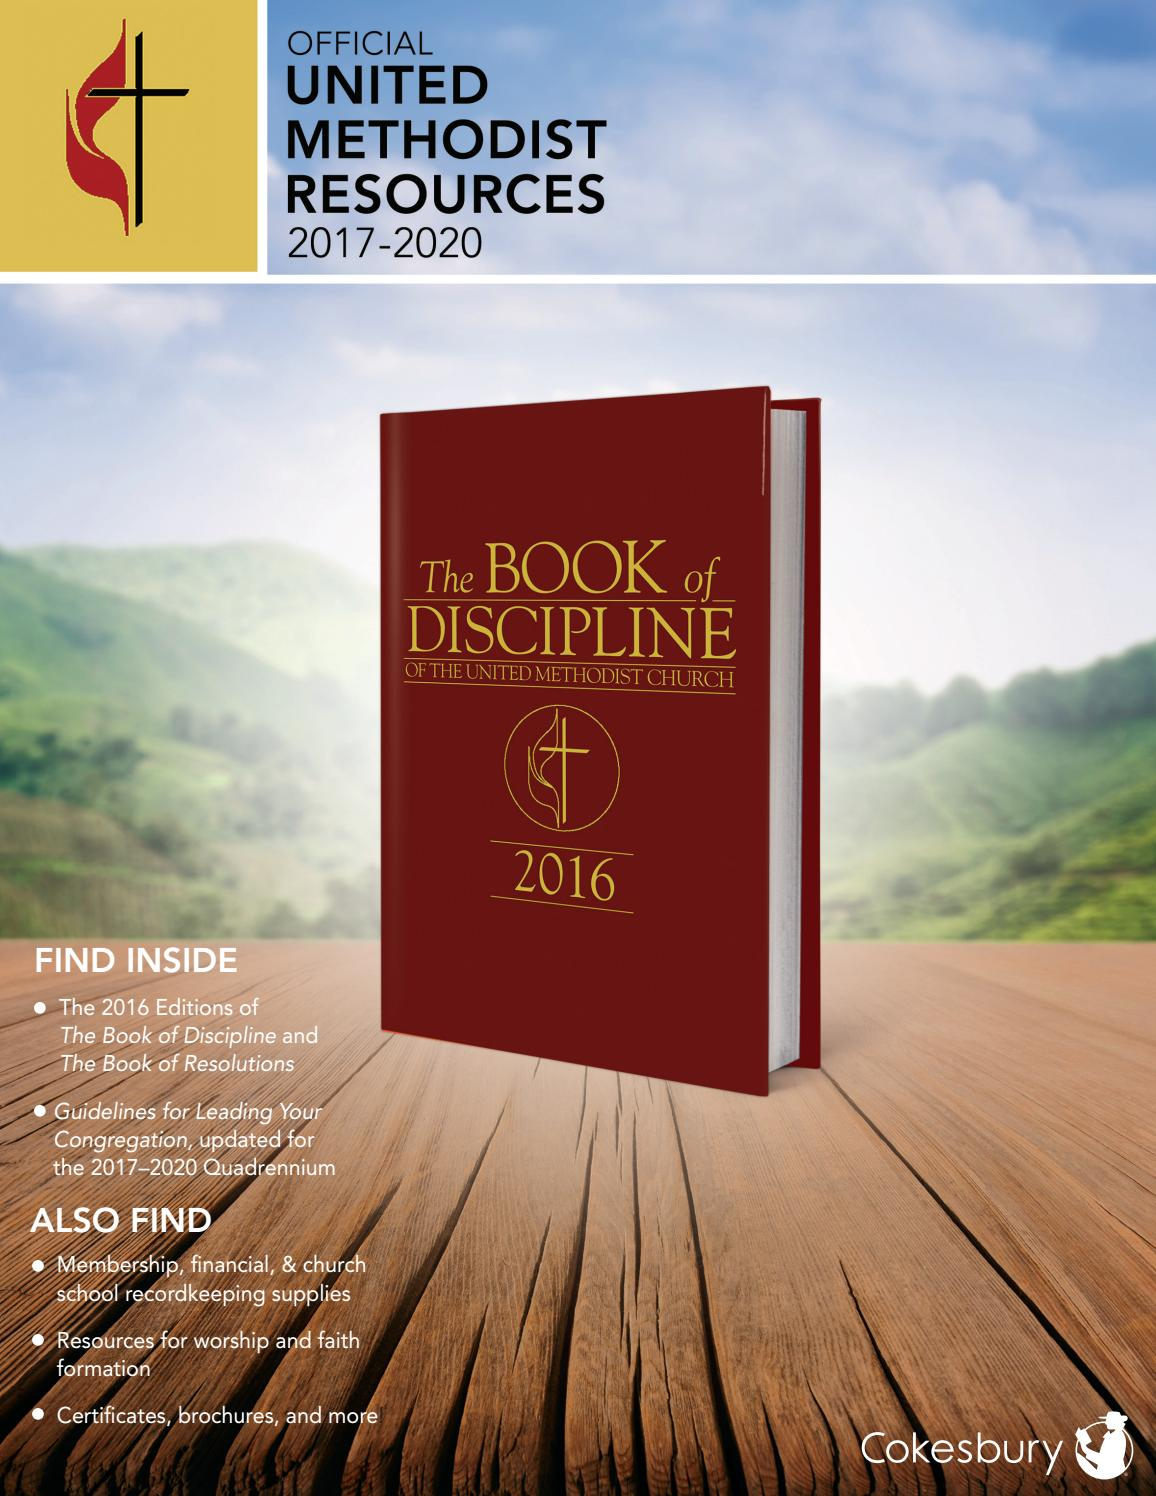 cokesbury's official united methodist resources 2017-2020, Presentation templates